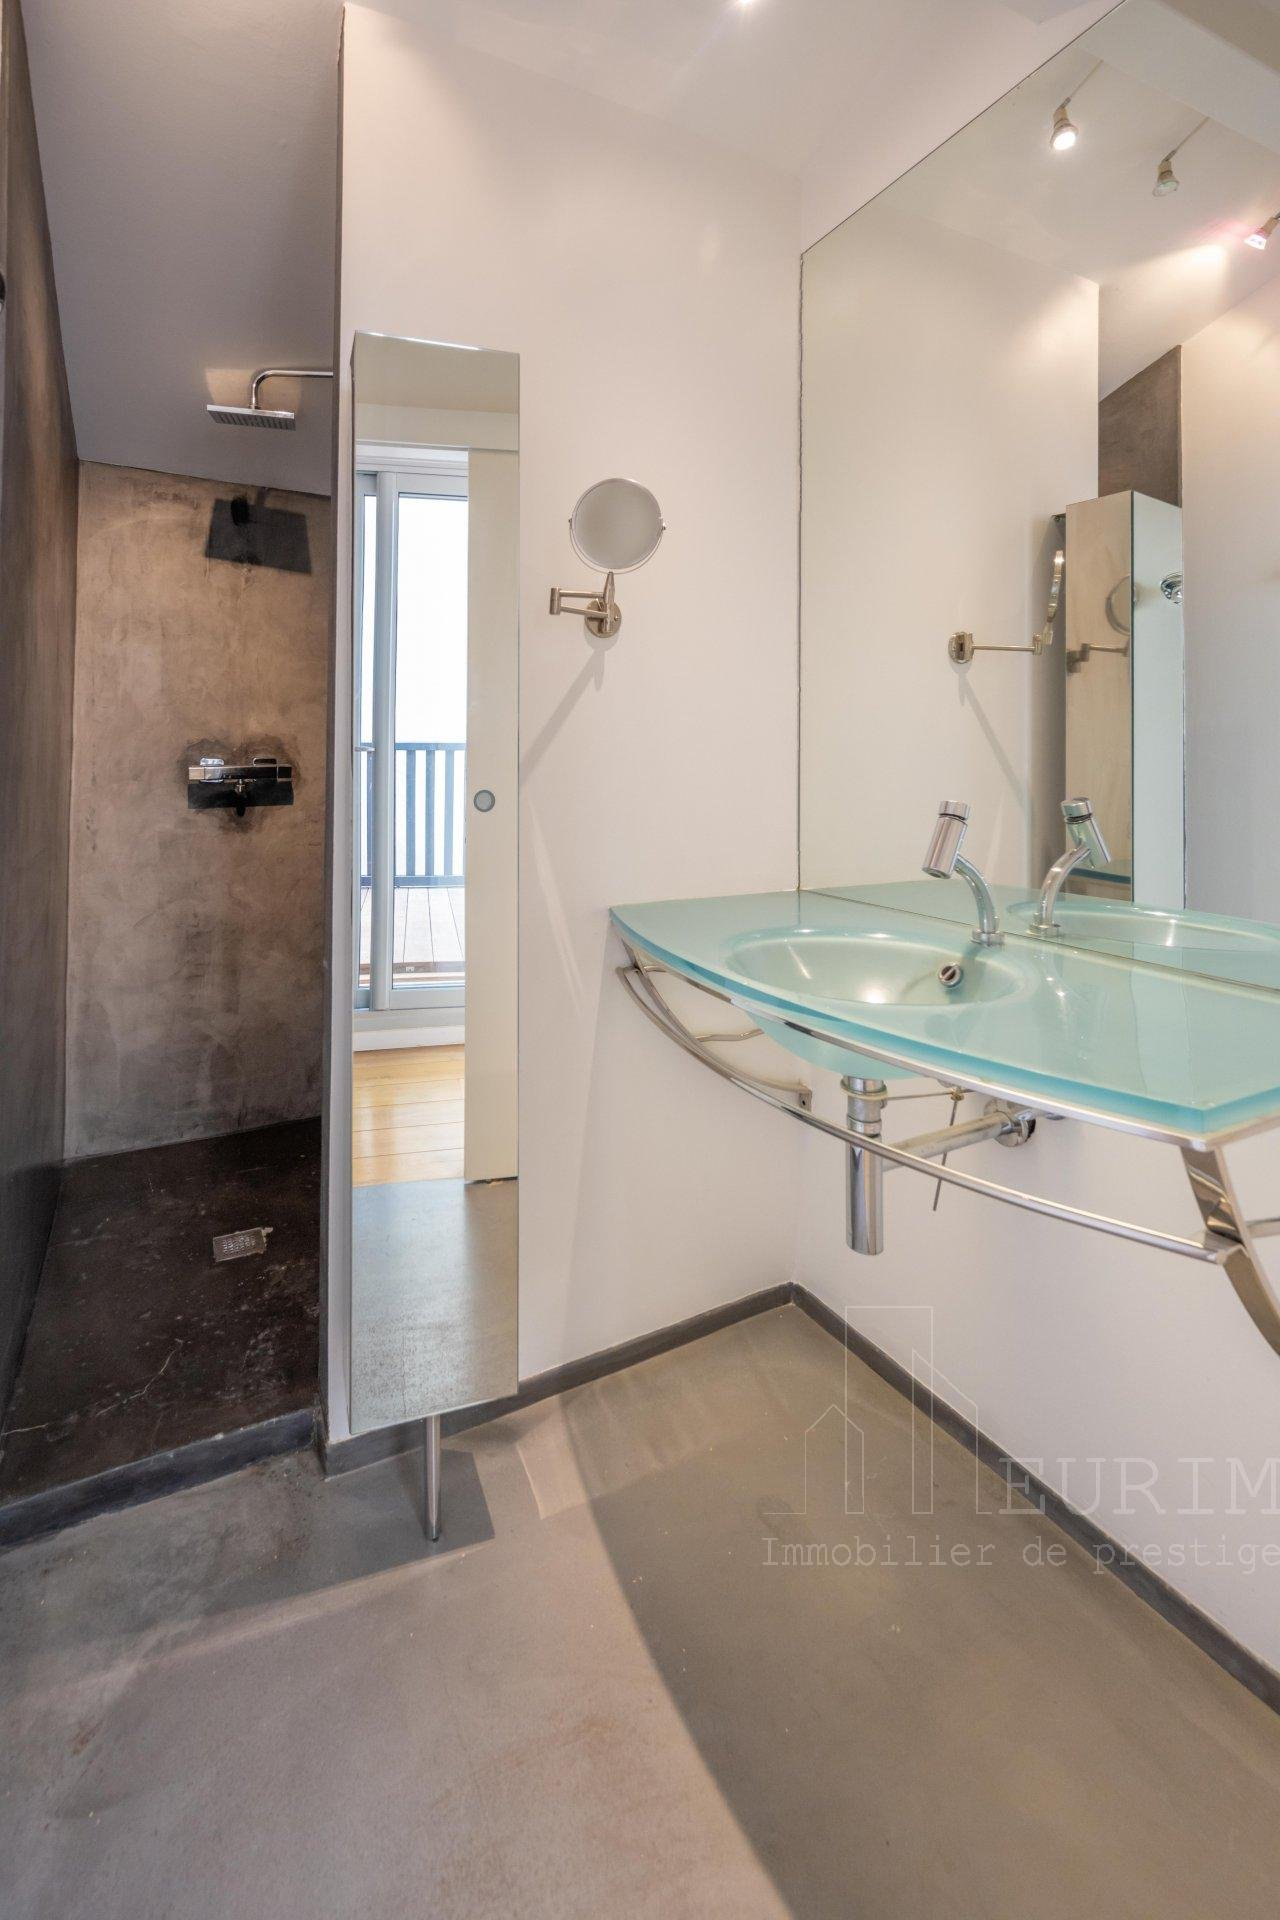 Rental House - Toulouse